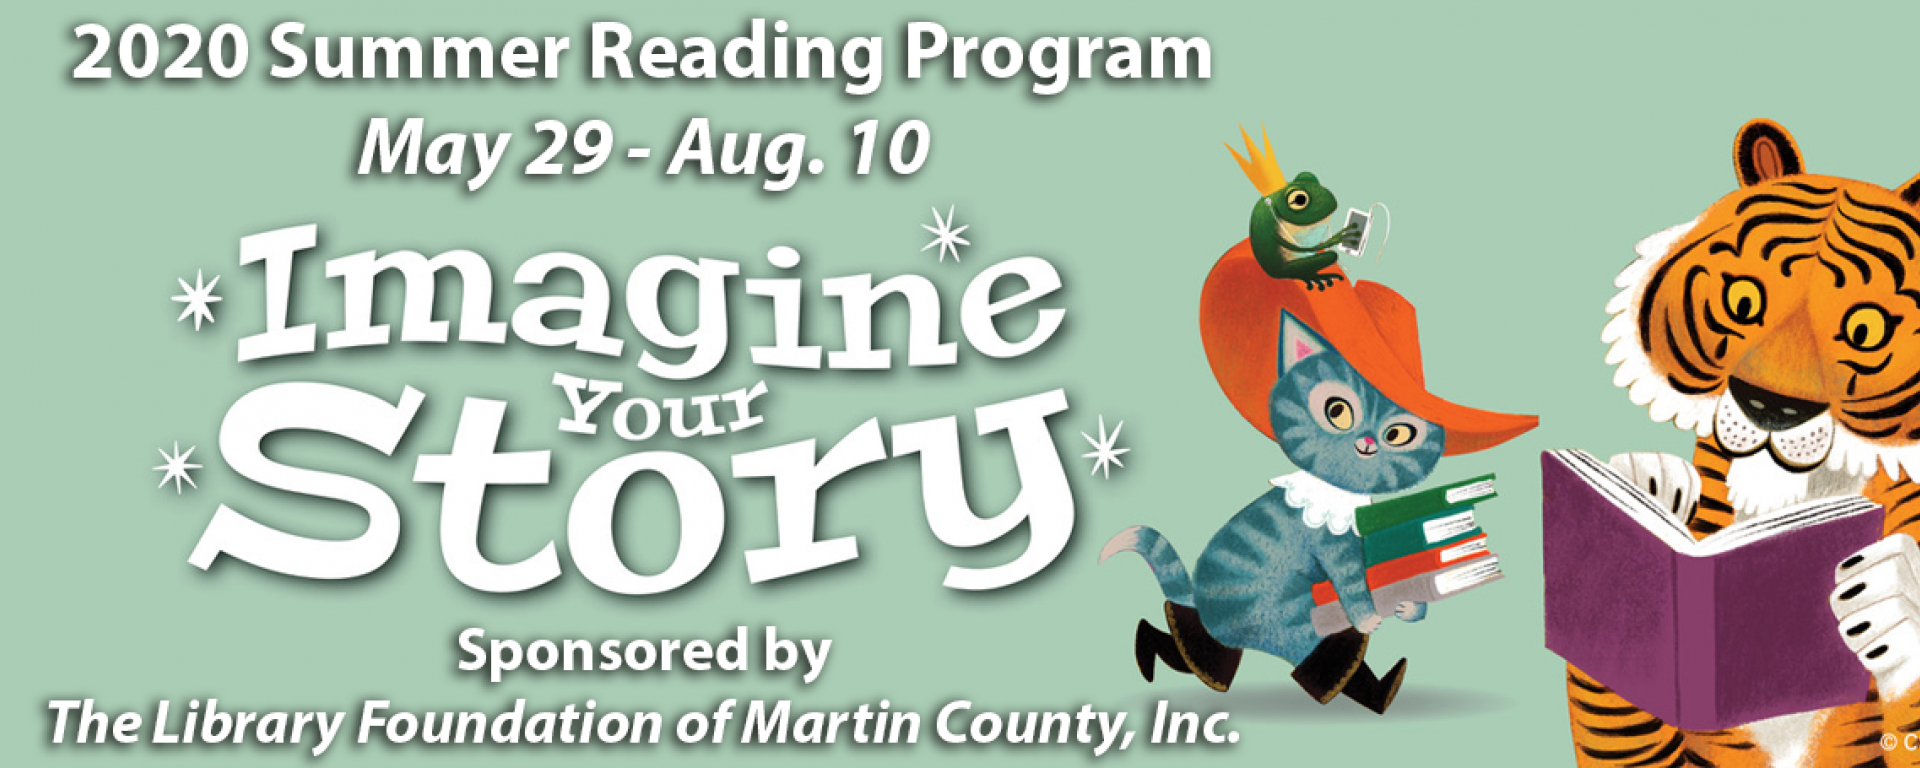 2020 Summer Reading Program: Imagine Your Story May 29 - Aug. 10 Sponsored by The Library Foundation of Martin County, Inc.